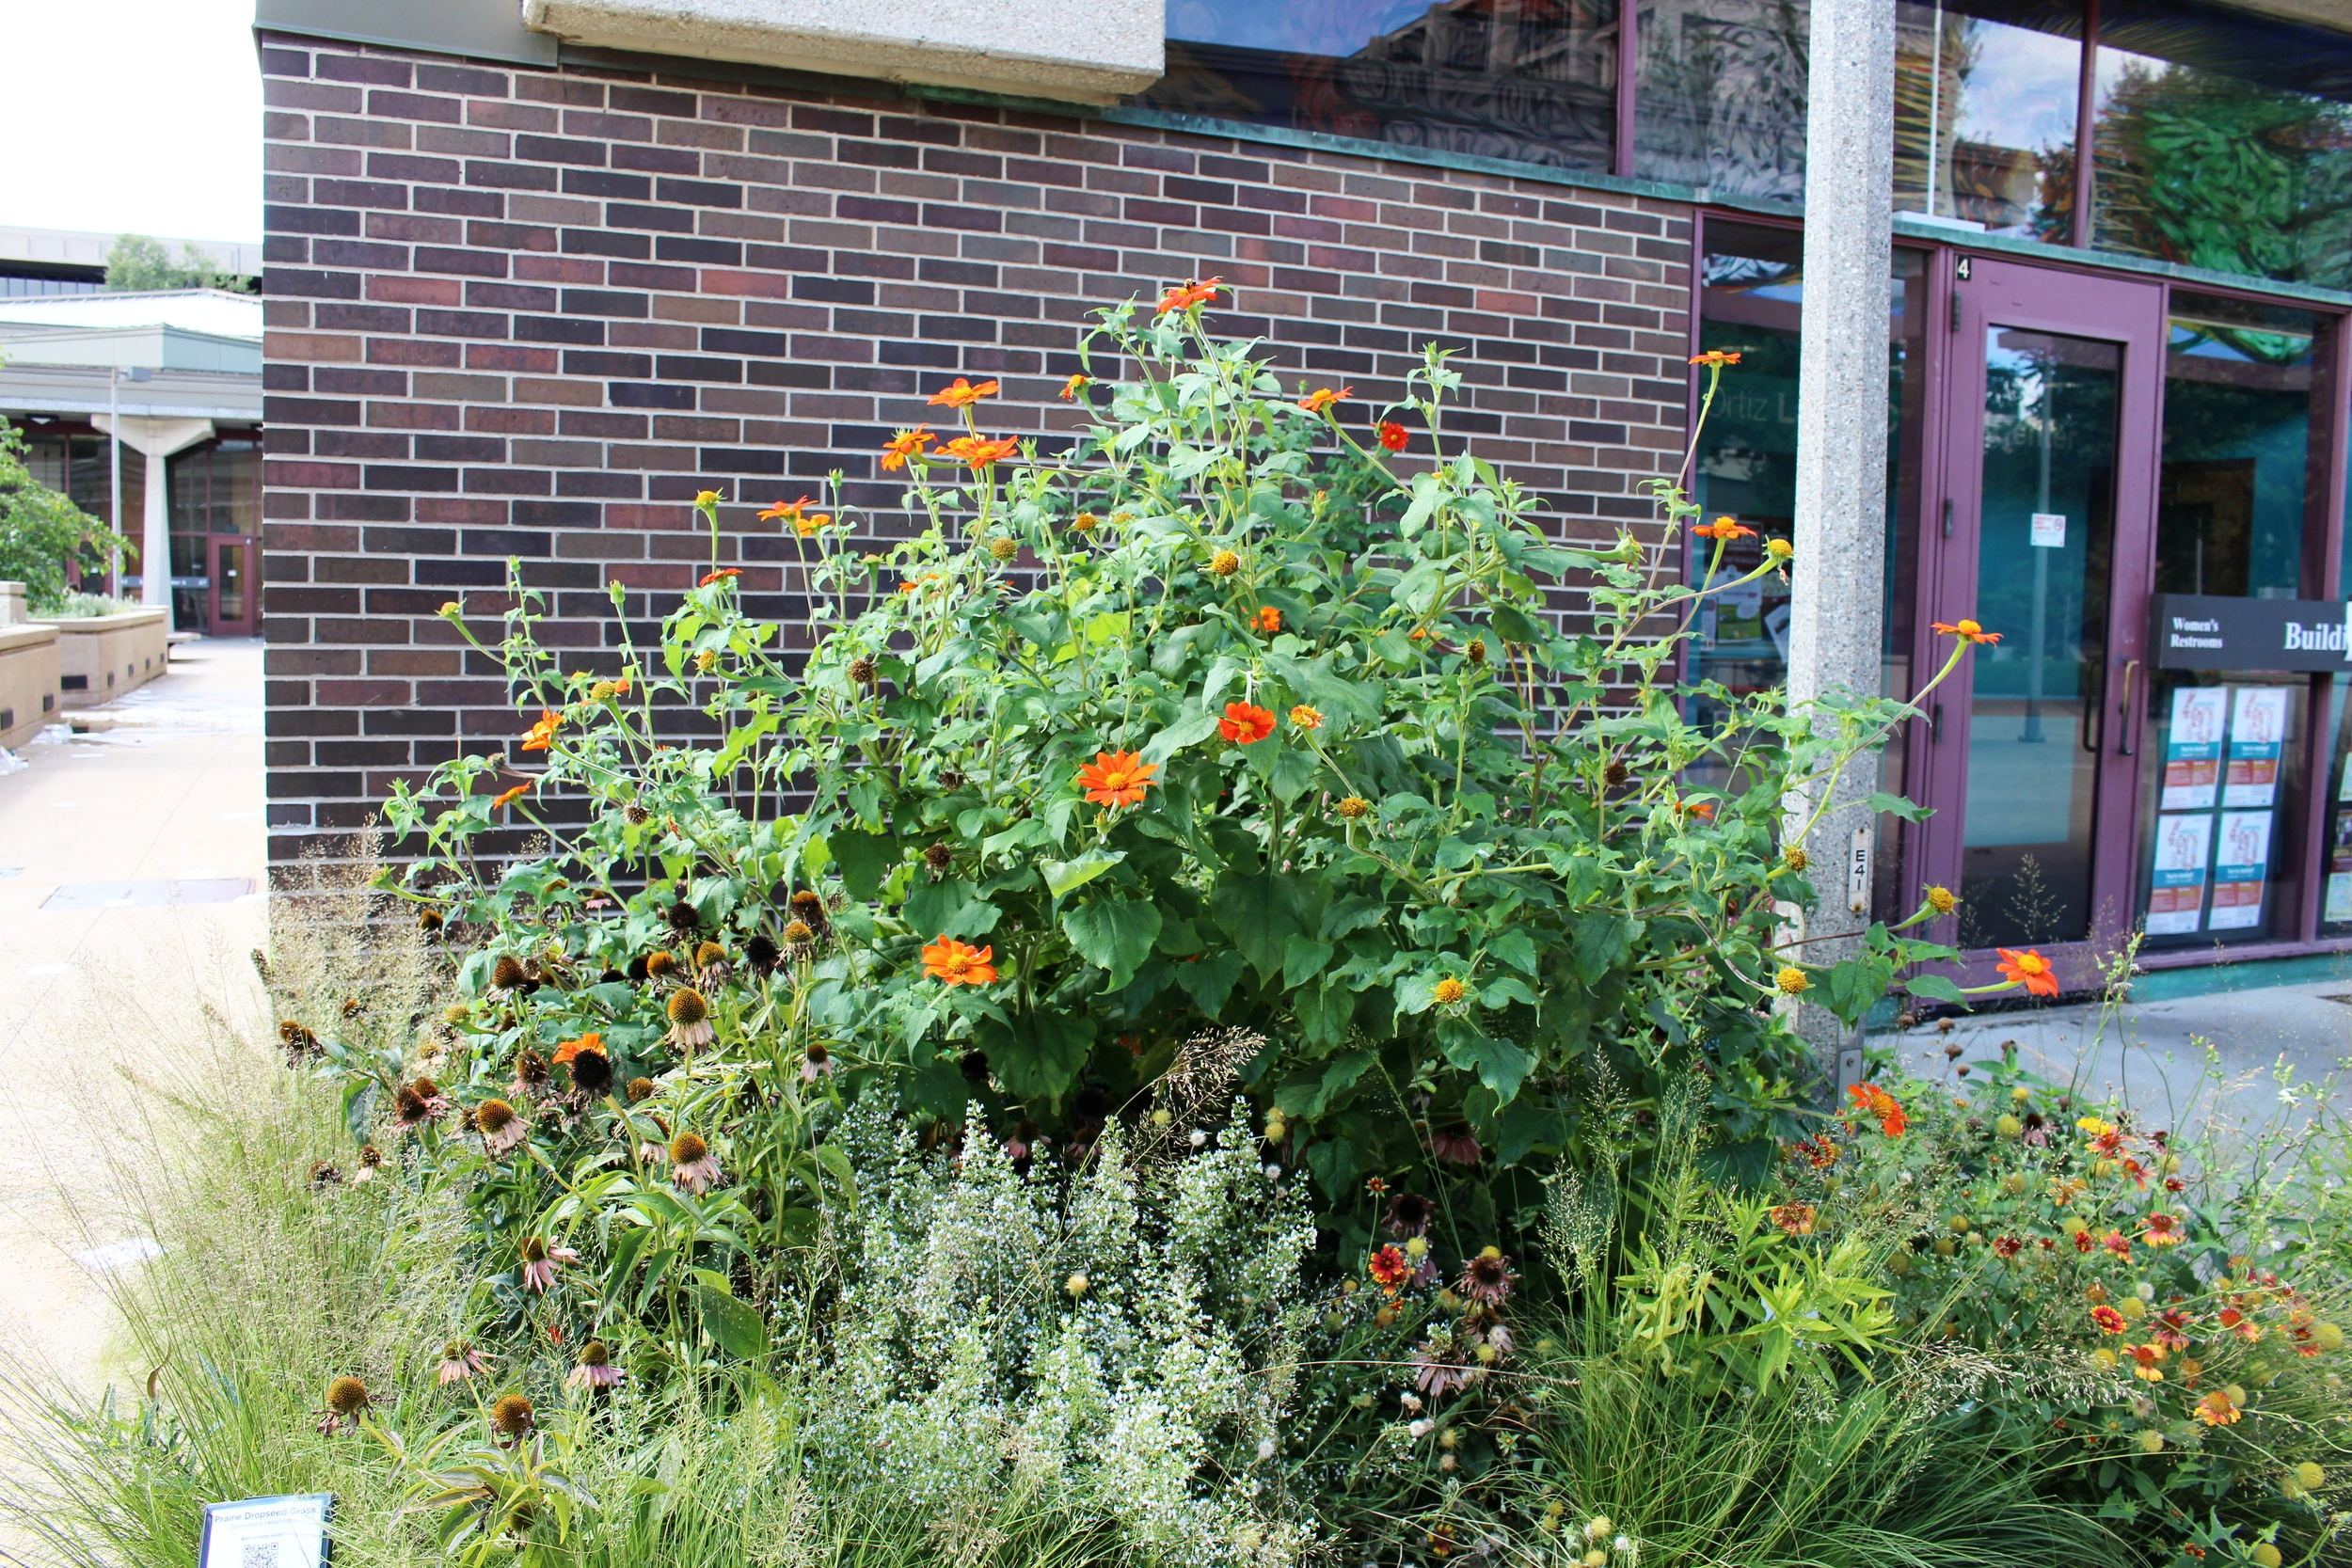 Picture of pollinator plants in garden